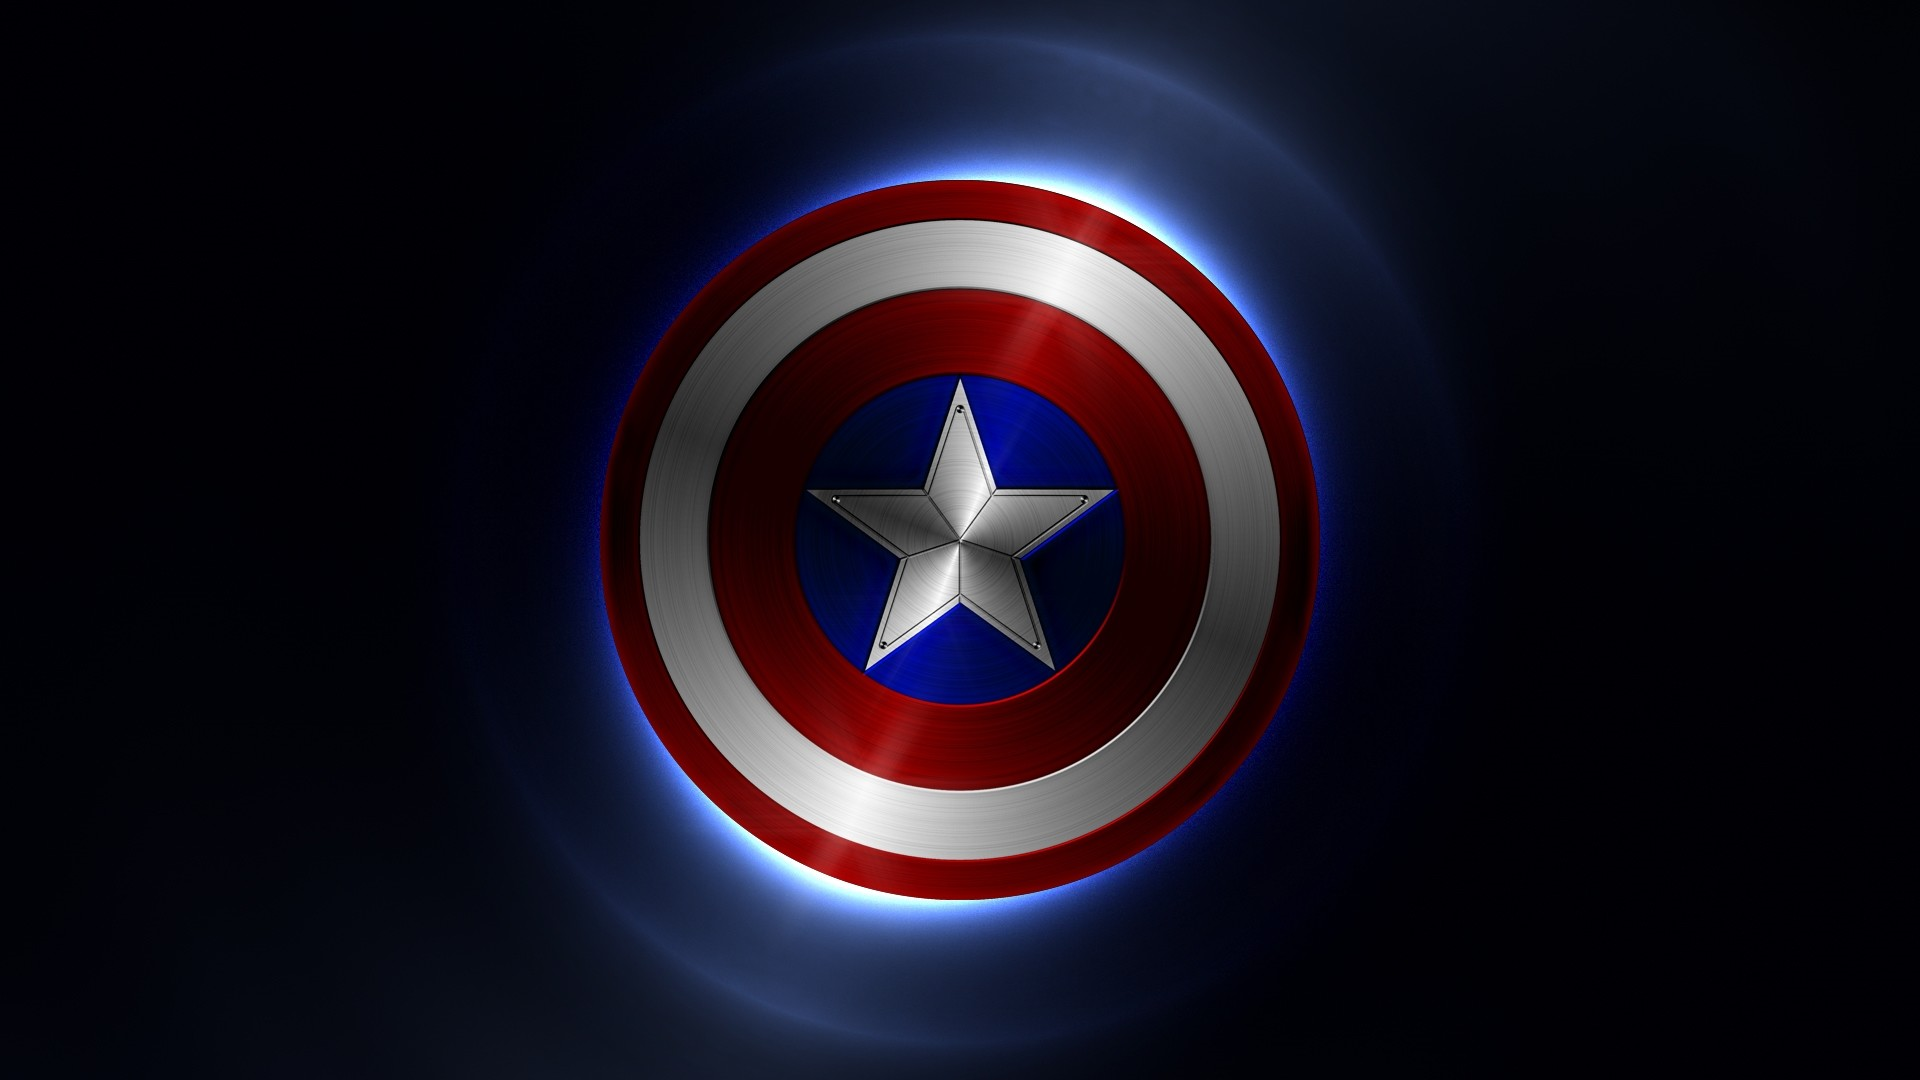 Captain America Shield Wallpaper Hd 84 Images